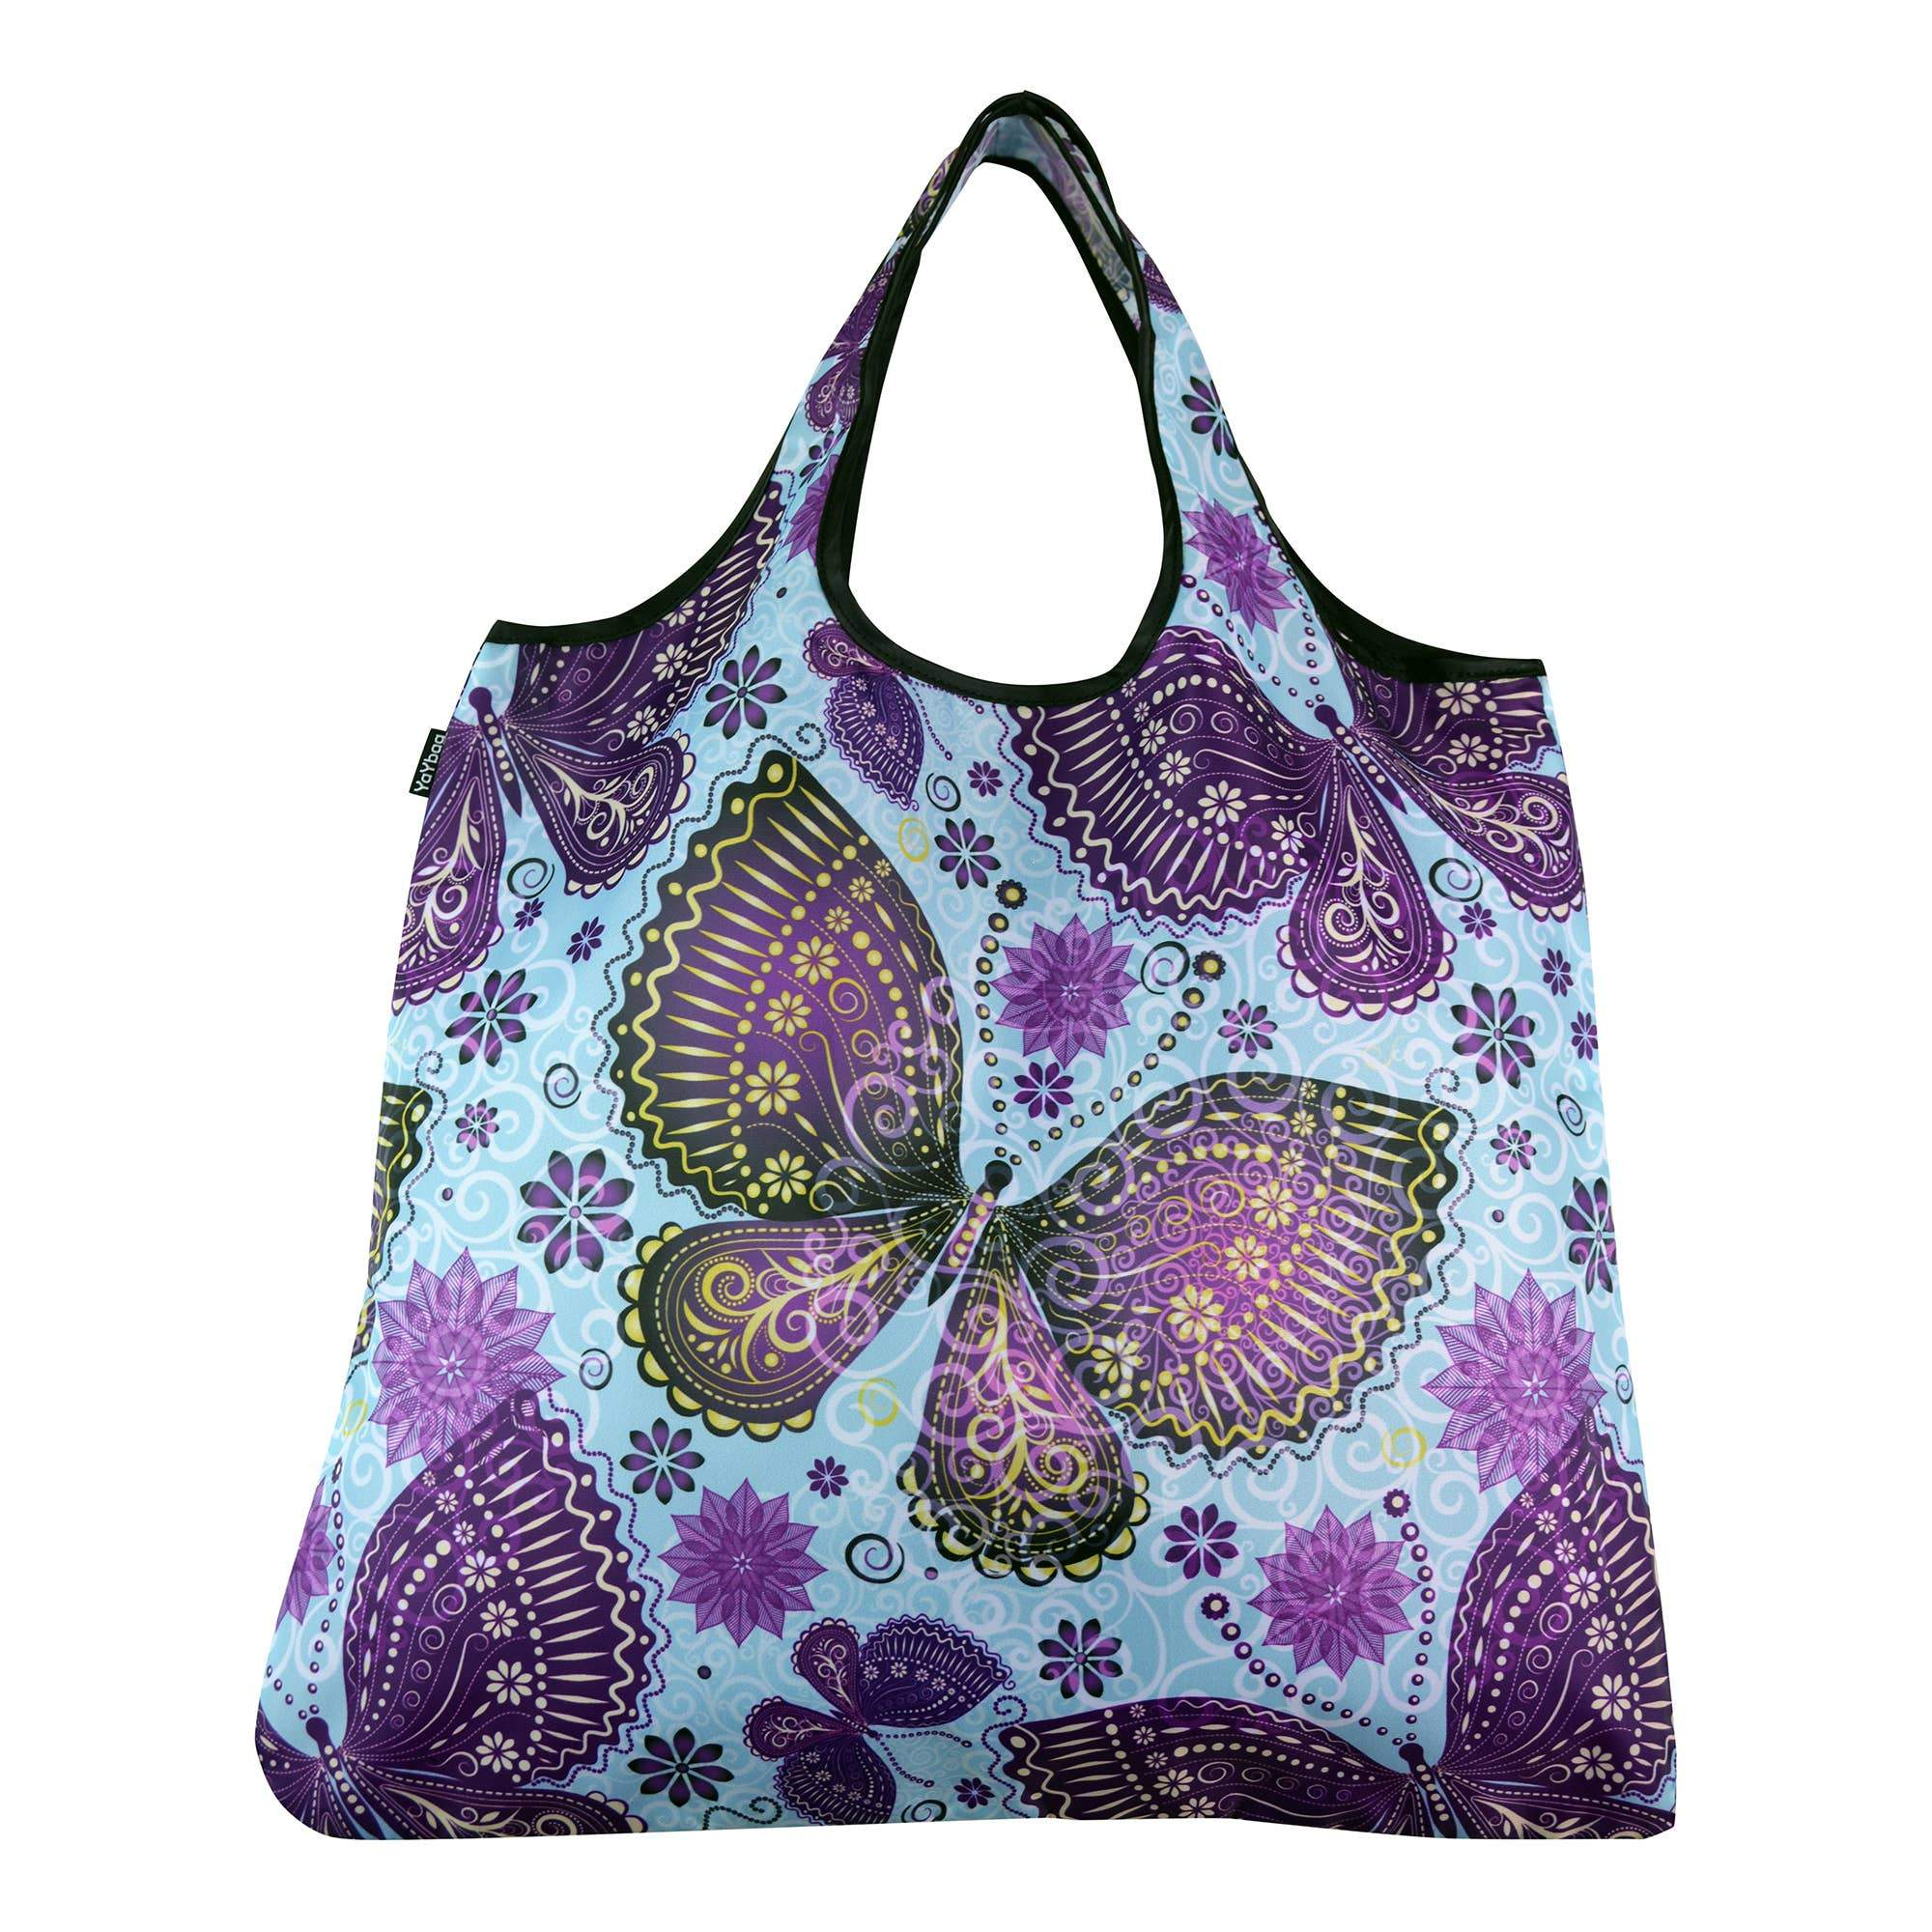 Buy Butterfly Harmony YaYbag ORIGINAL from Walking Pants Curiosities, the Most un-General Gift Store in Downtown Memphis, Tennessee!